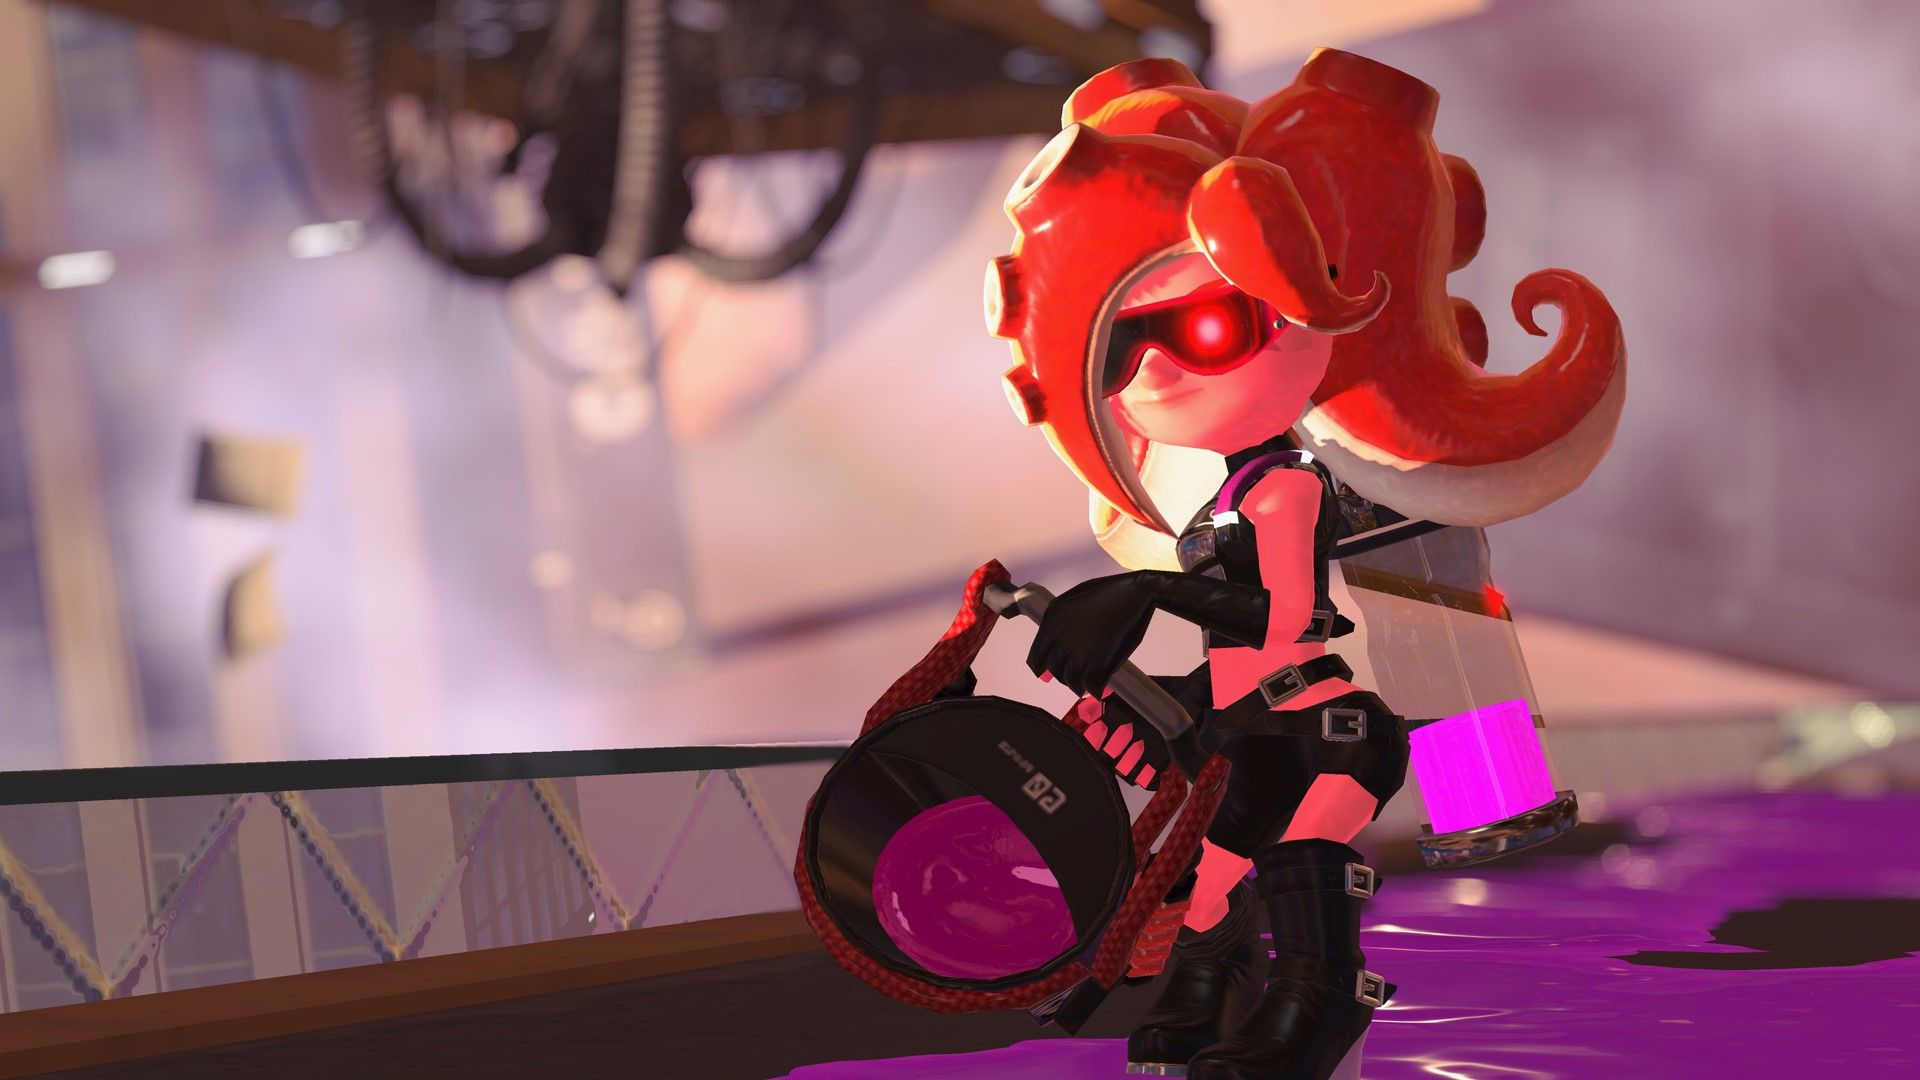 Nintendo Has Banned Splatoon 2 Players For Hacking To Play As